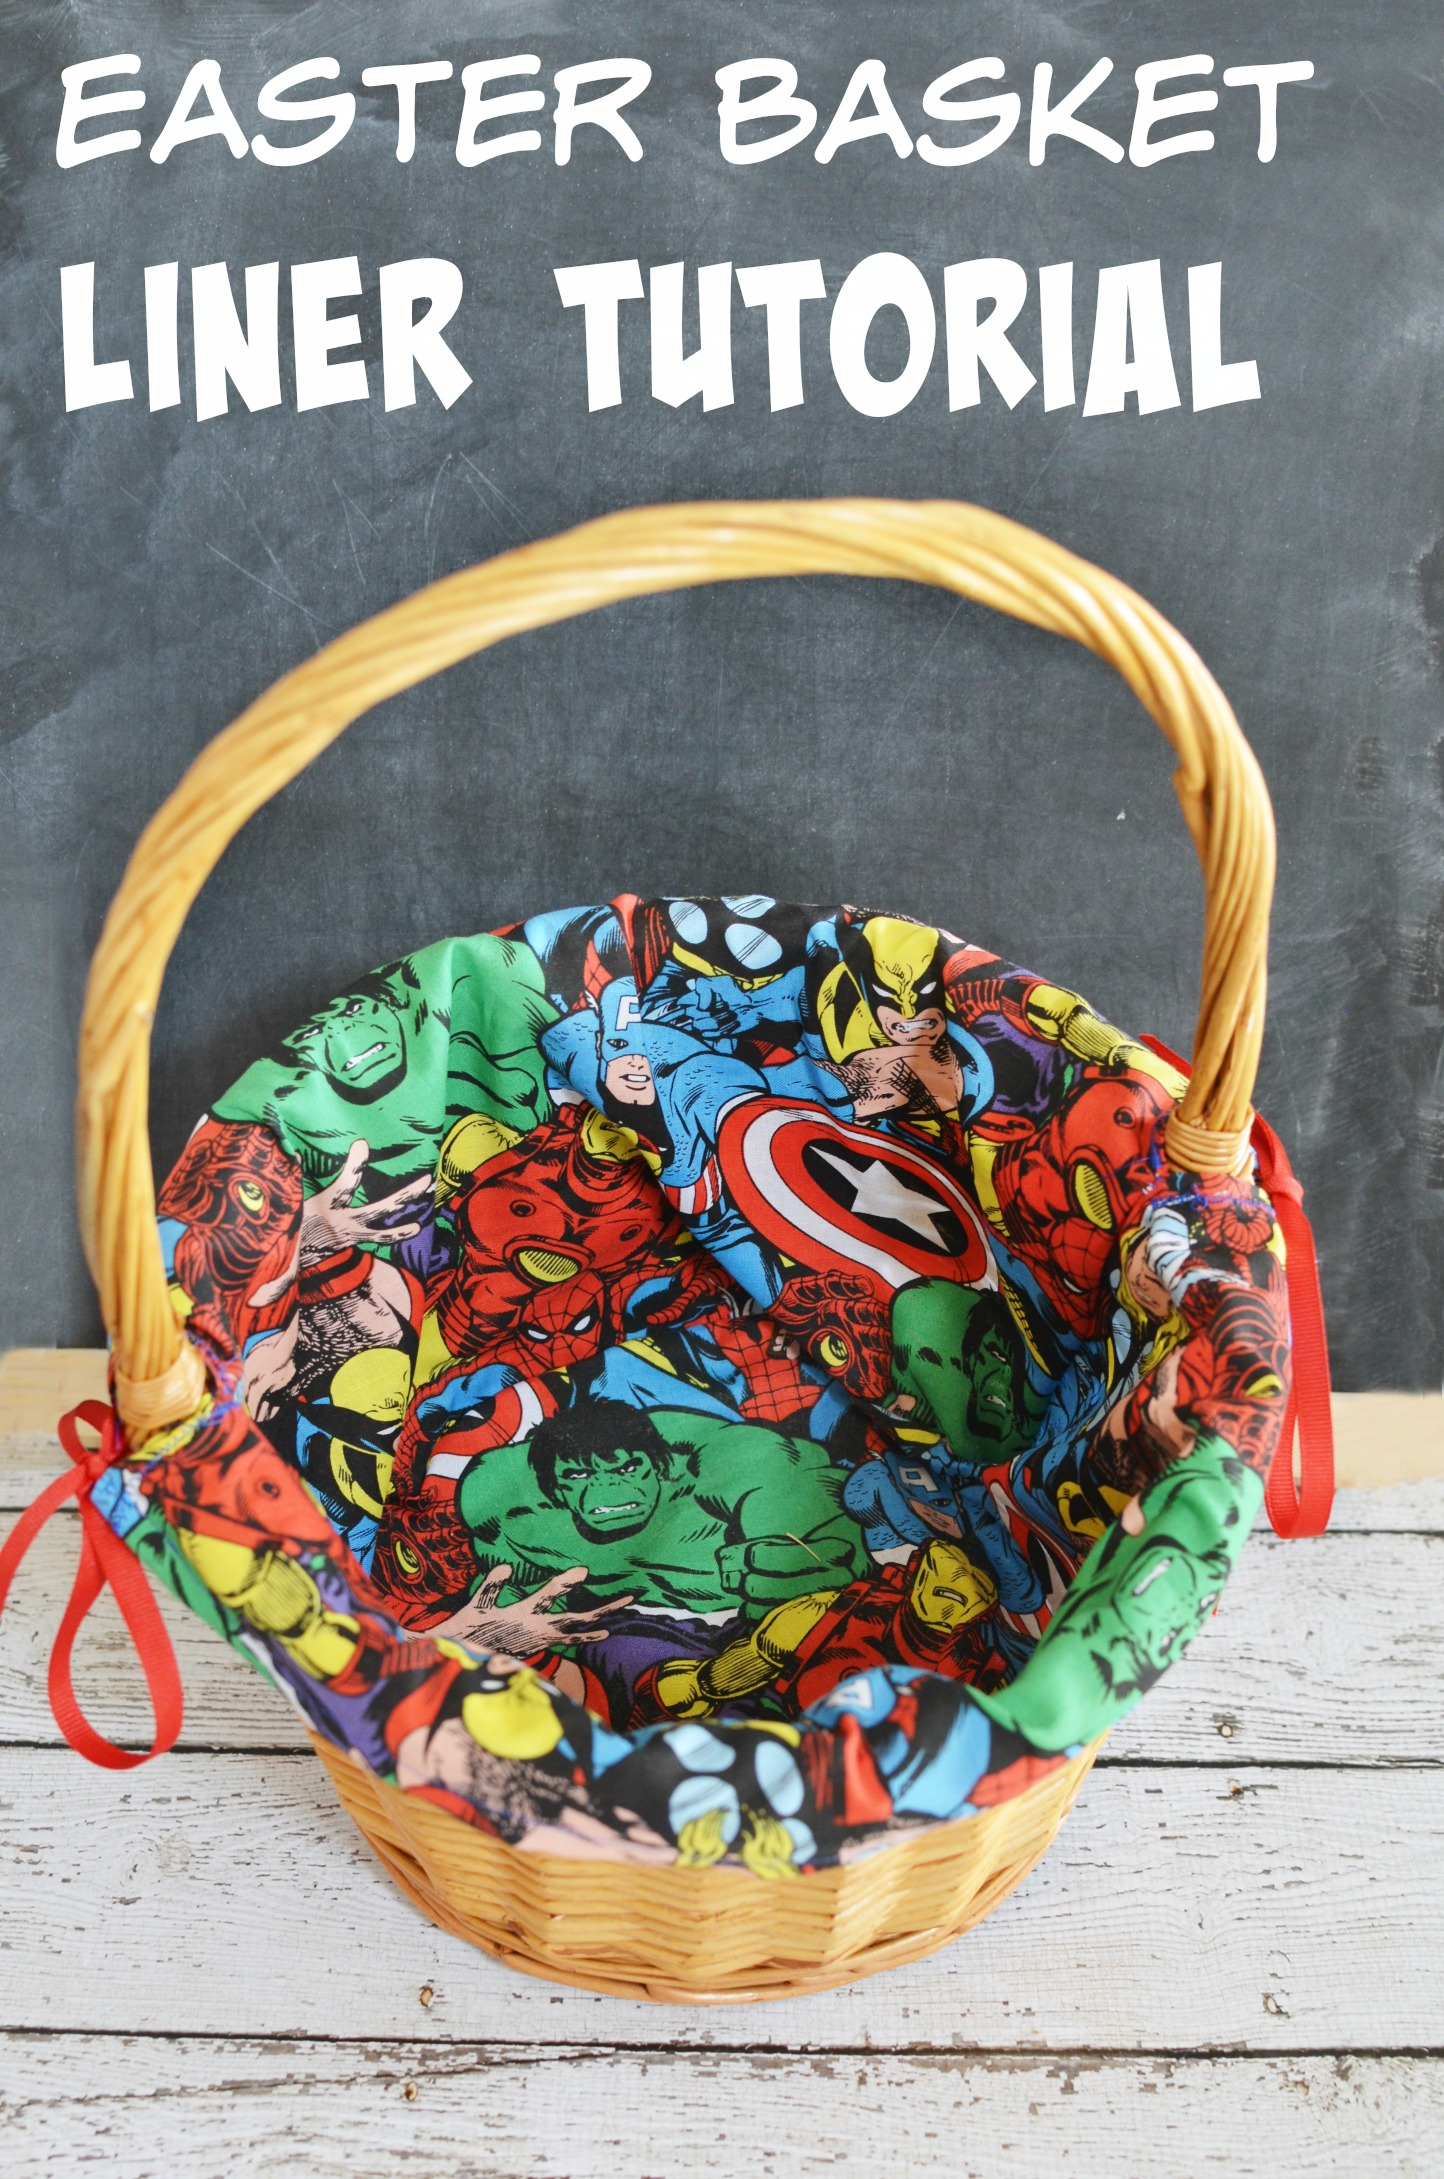 Diy marvel easter basket liner tutorial eclectic momsense diy marvel easter basket liner tutorial negle Image collections